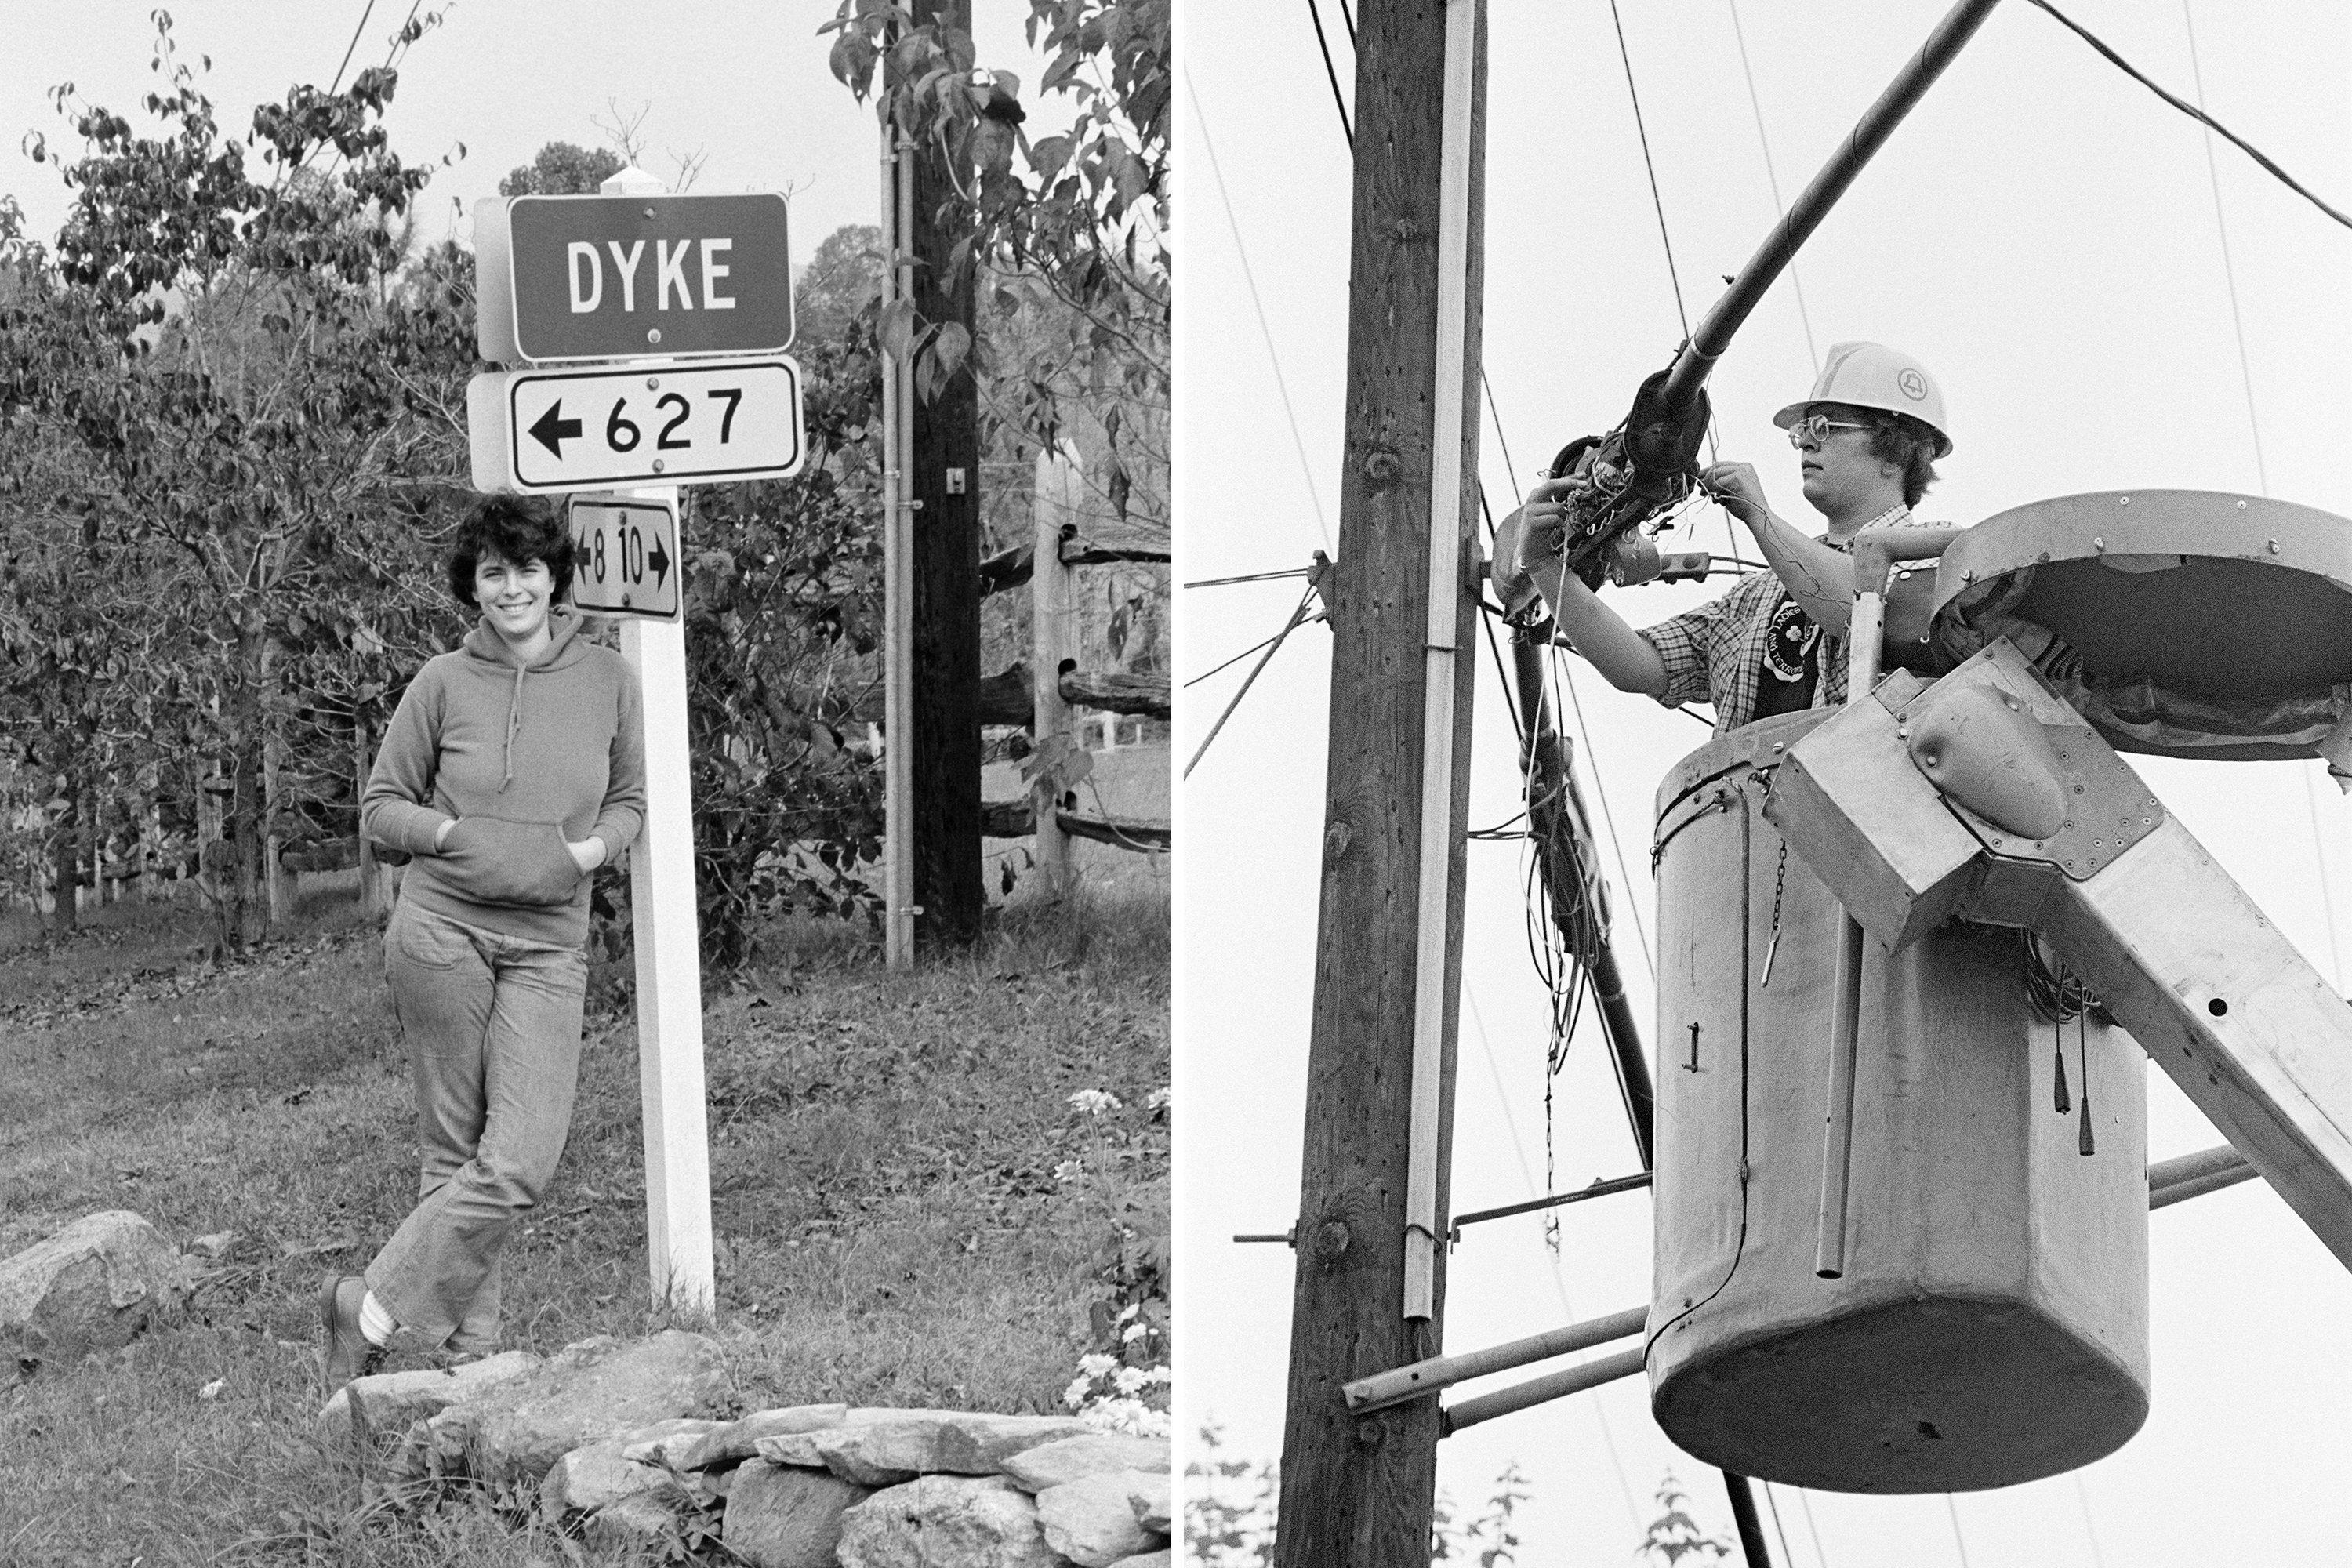 A woman stands in front of a sign saying Dyke and another woman works in a cherrypicker on some power lines